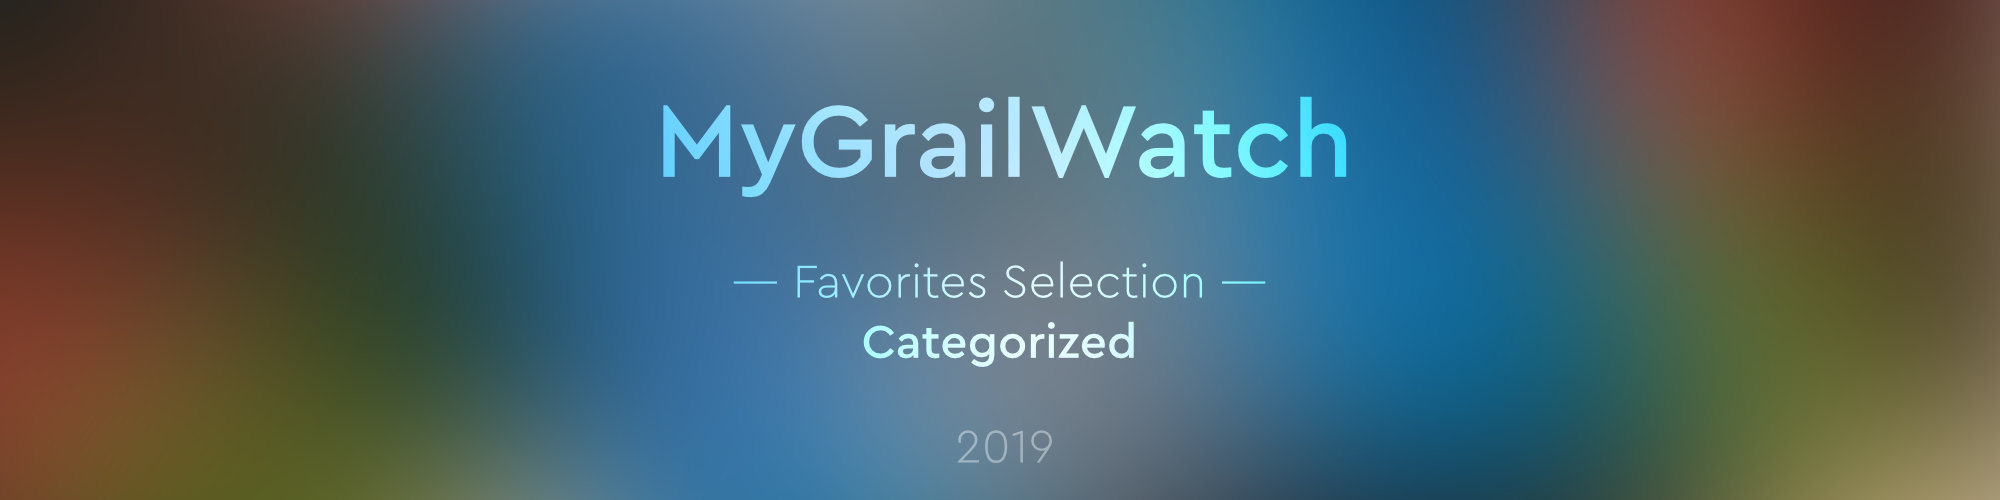 mgw favorites selection categorized 2019